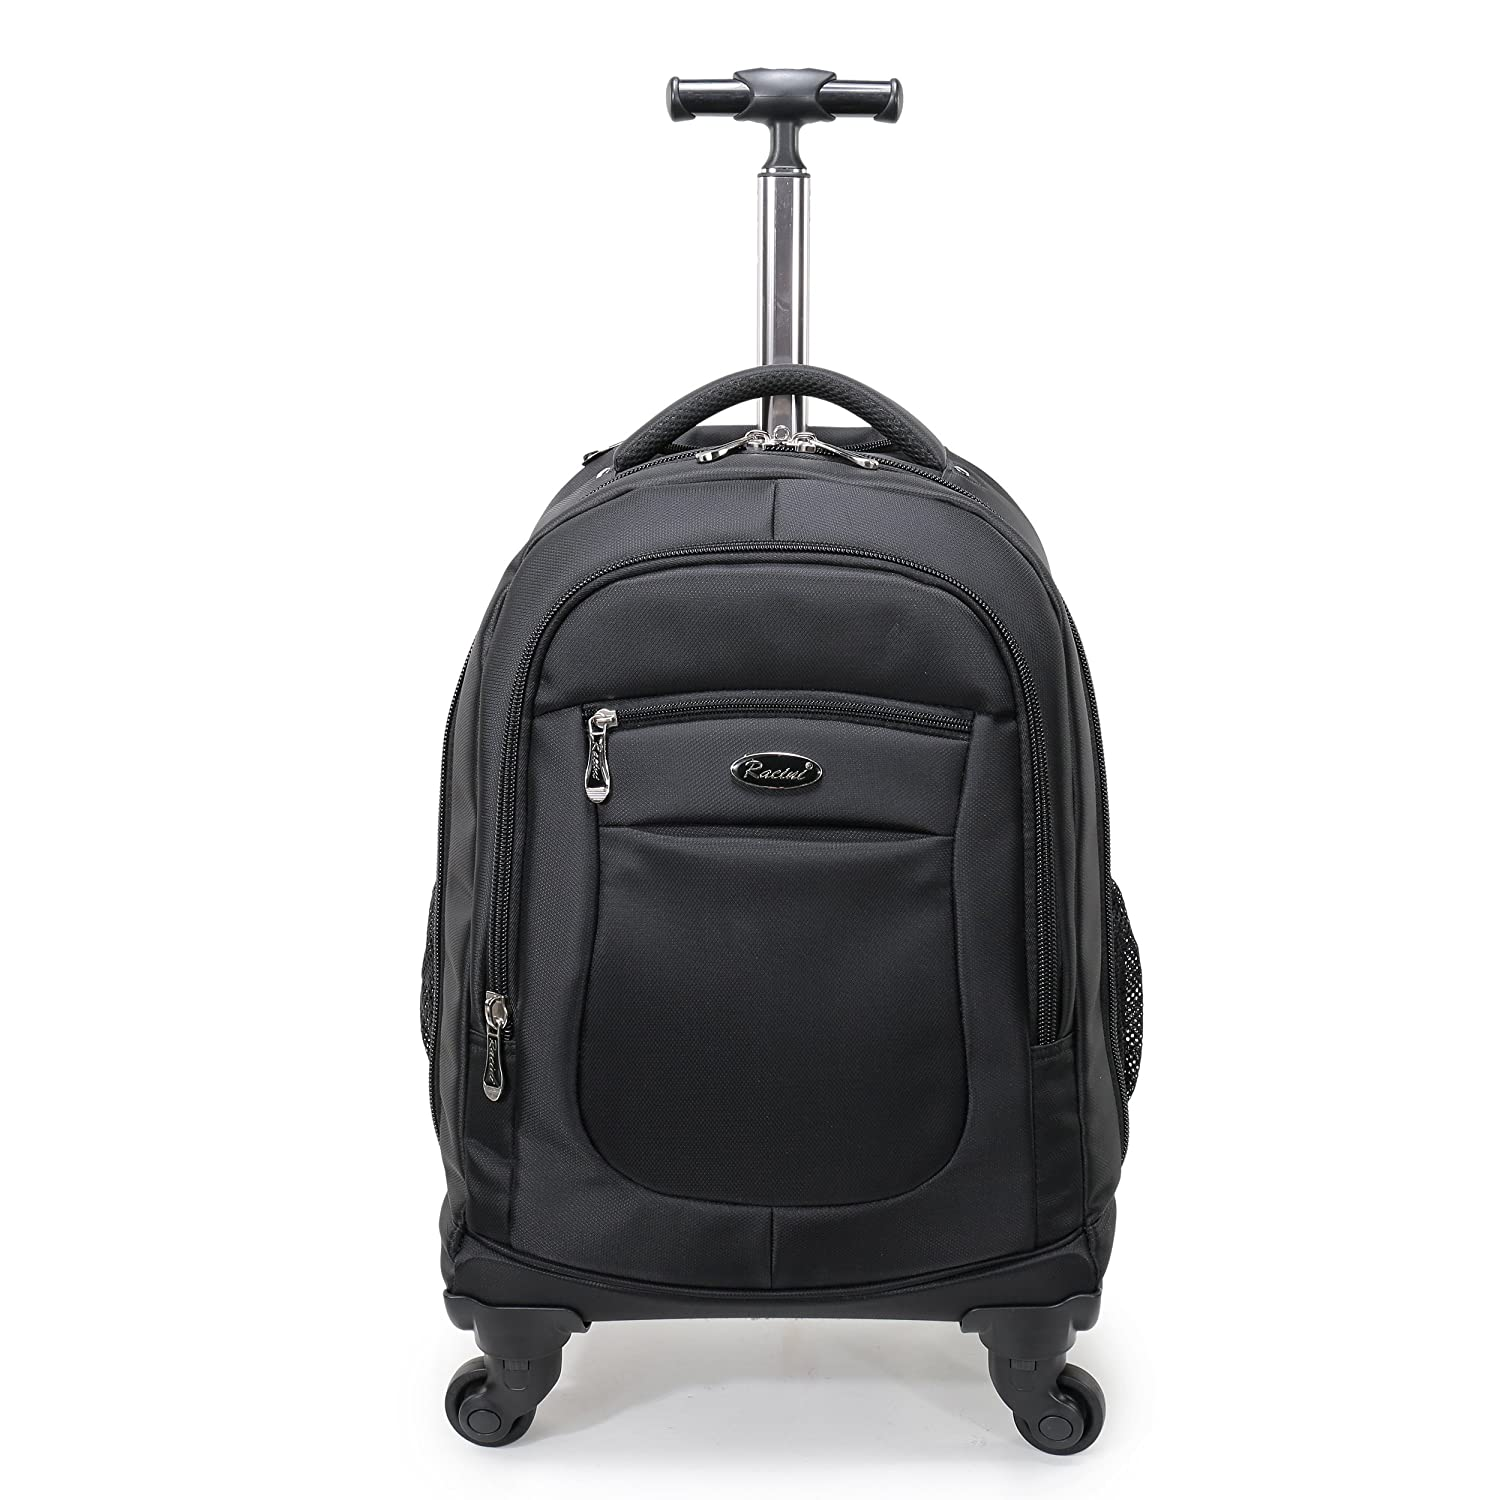 318face09 Amazon.com: Racini Nylon Waterproof Rolling Backpack, Freewheel Travel Wheeled  Backpack, Carry-on Luggage with Anti-Theft Zippers (Black): Sports &  Outdoors